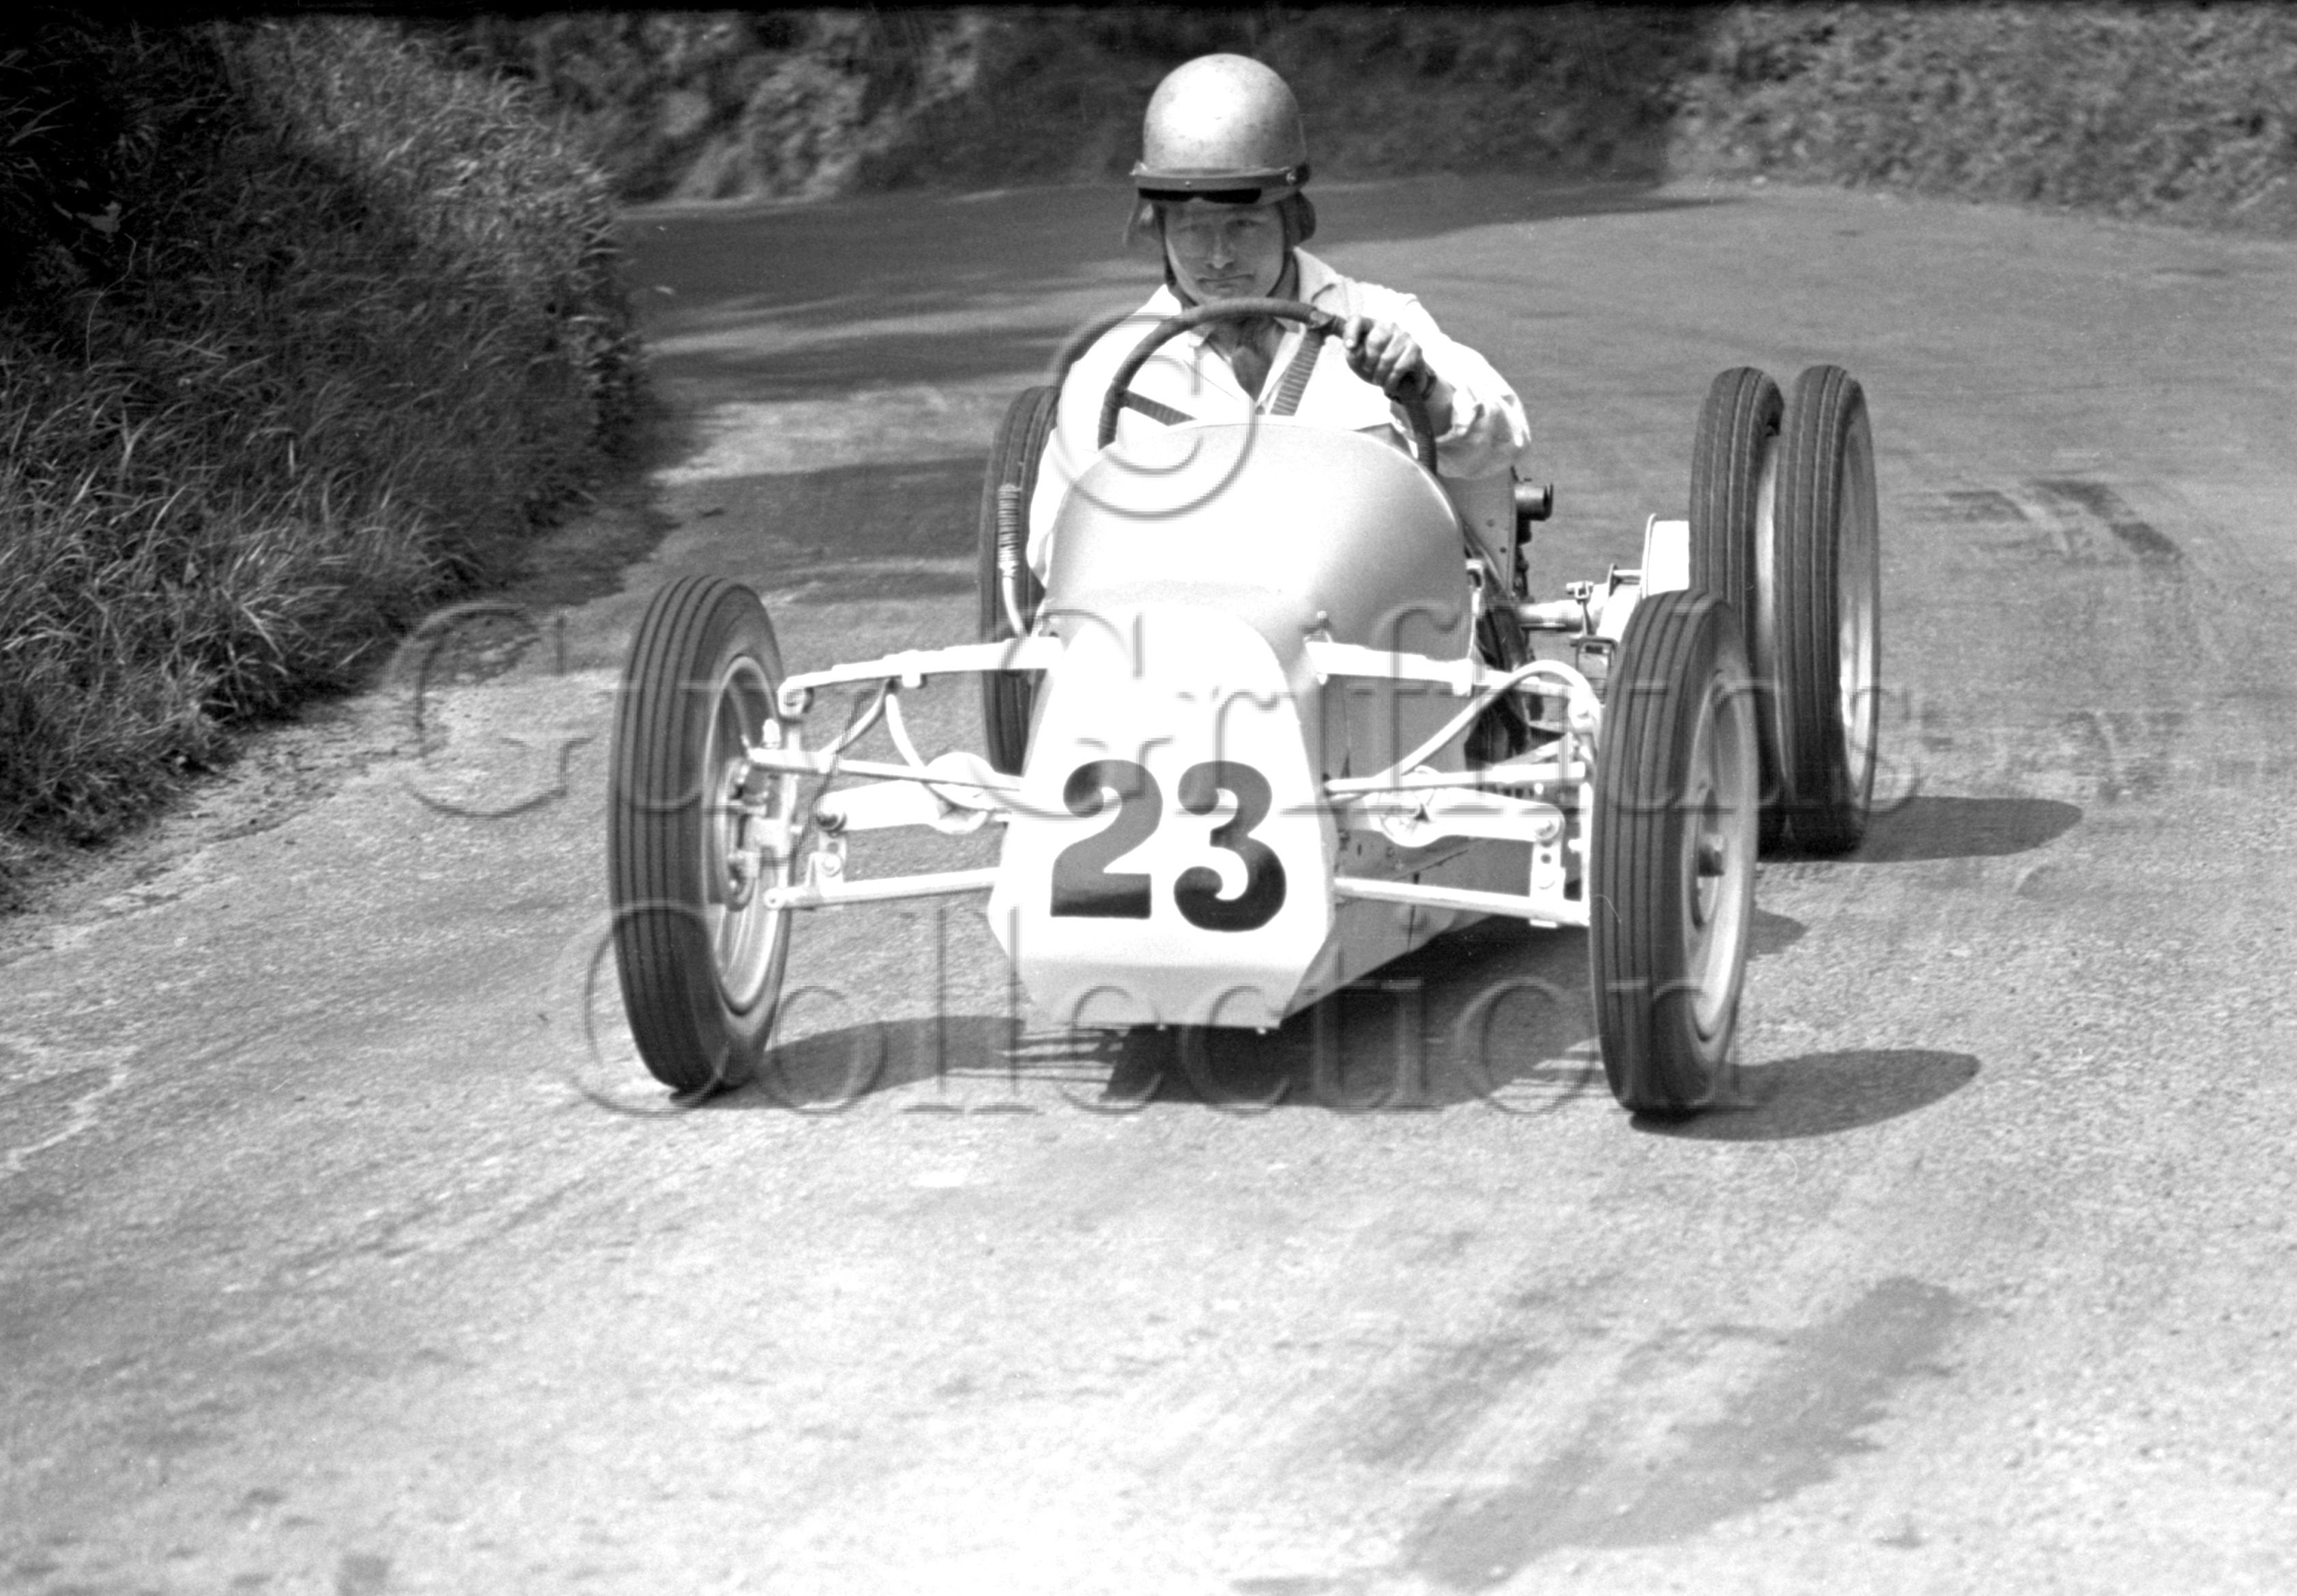 23-232—H-D-Calmark–Calmark-Special–Shelsley-Walsh–12-06-1948.jpg - The Guy Griffiths Collection